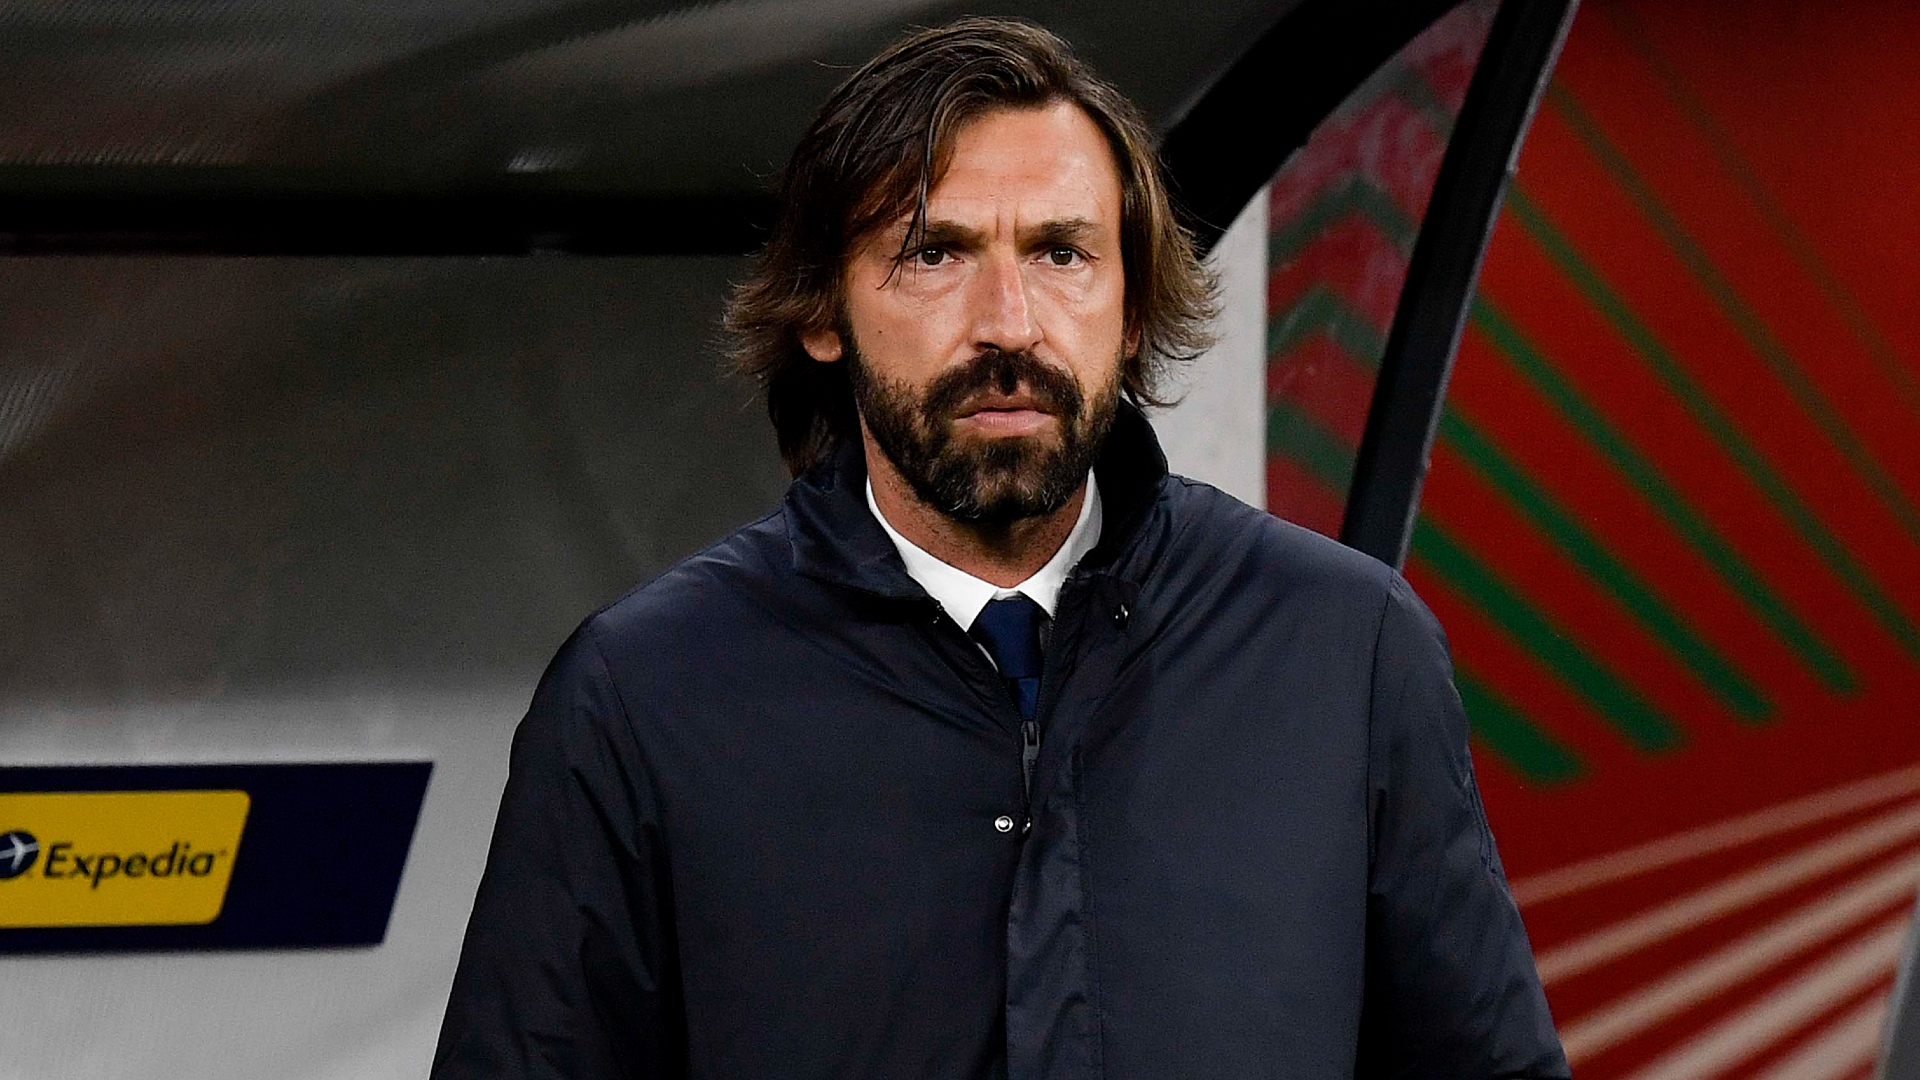 Juve a 'bit angry' but well physically, says Pirlo